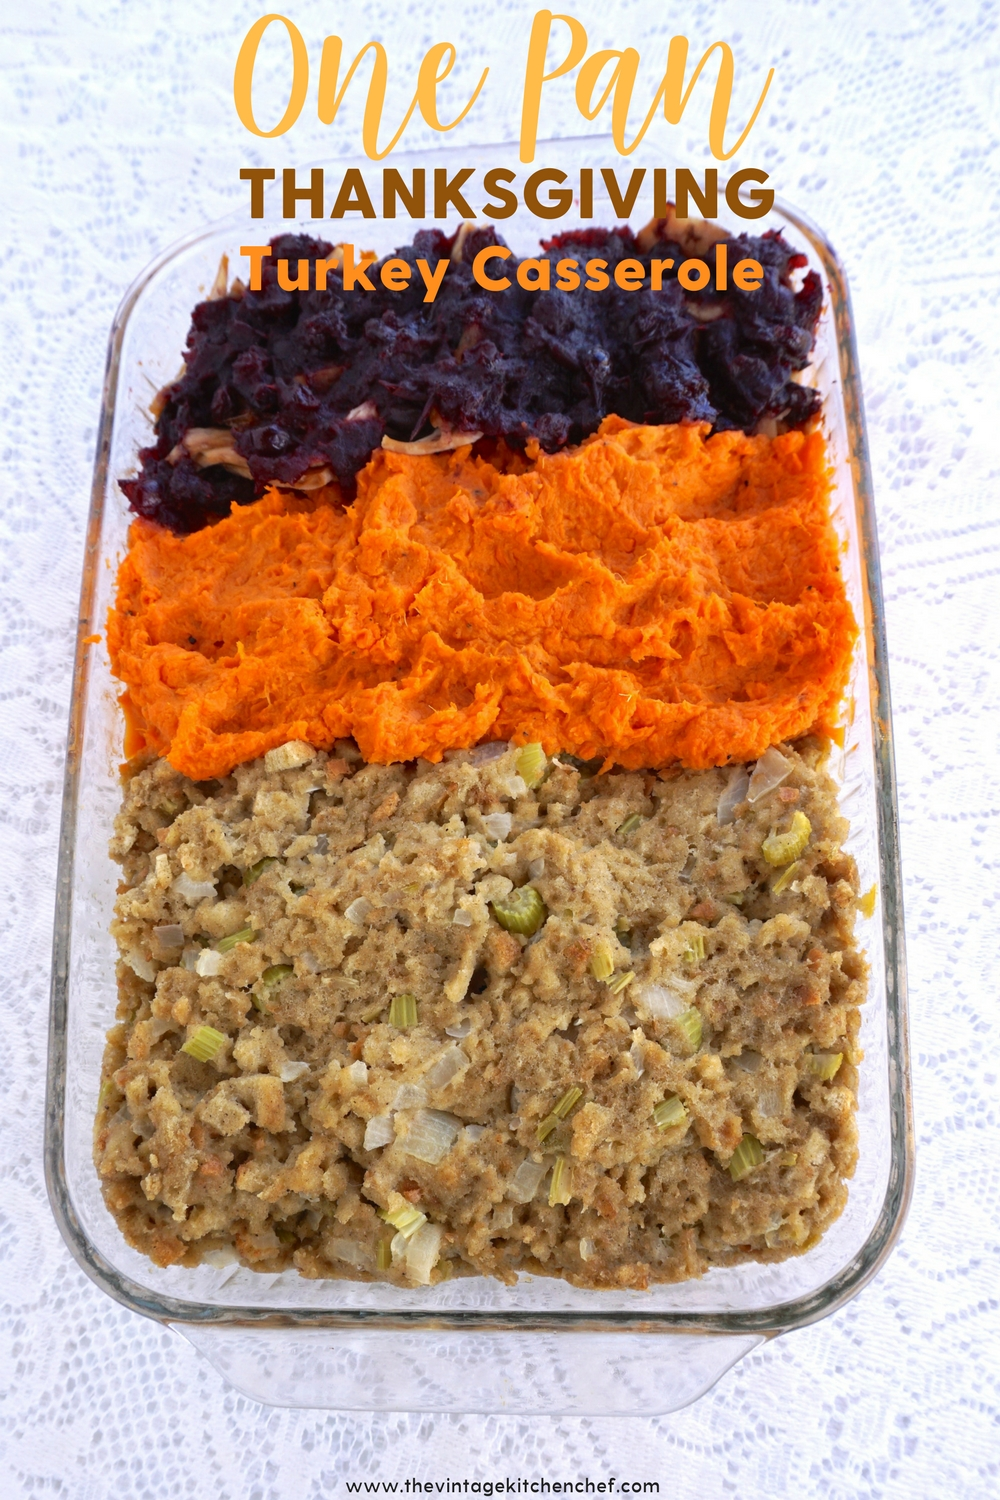 Easy One Pan Thanksgiving Turkey Casserole is great for a family gathering! Guess what? We enjoy this even when it's not November since it's delicious!